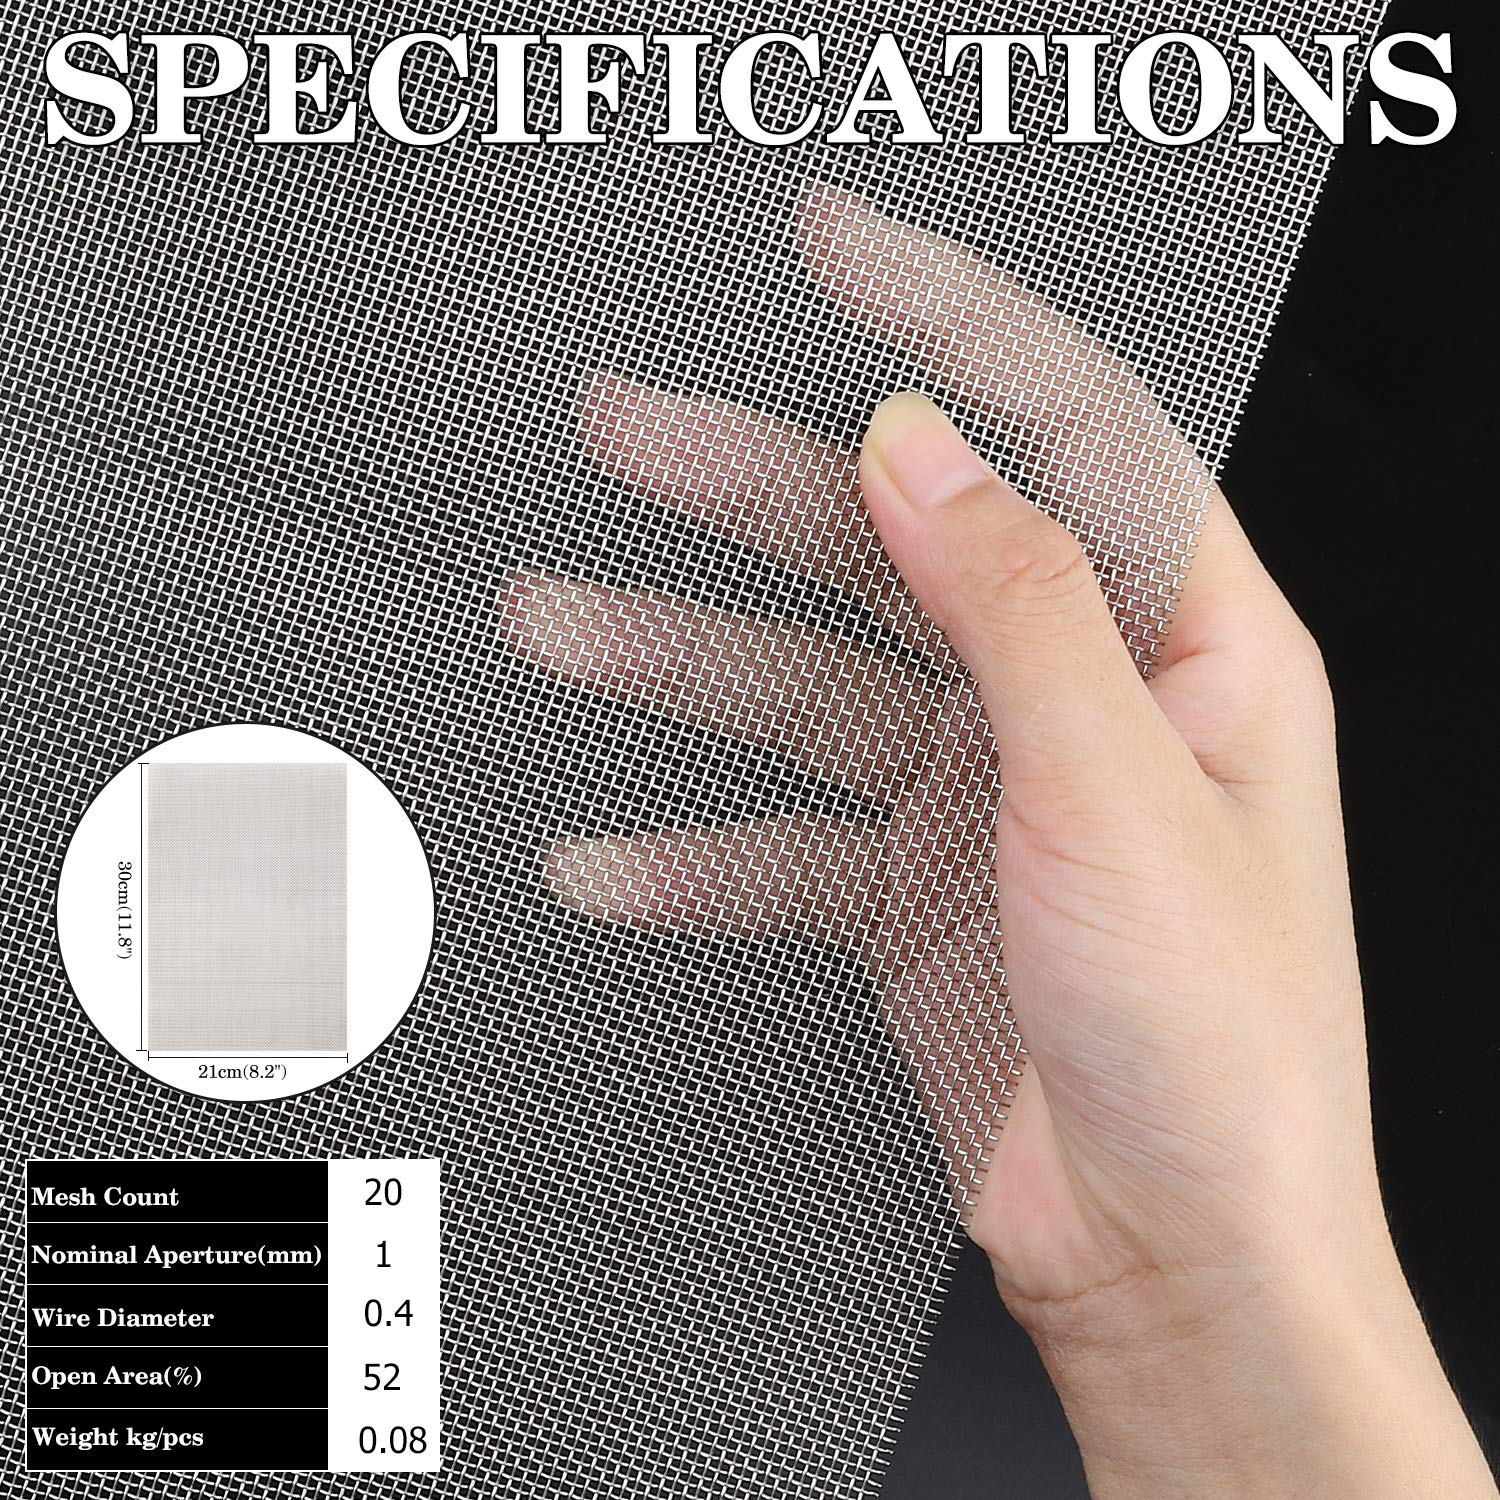 30X 21CM A4 Metal 20 Mesh Screen Sheet 1mm Hole 11.8X8.2 4PACK 304 Stainless Steel Woven Wire Mesh